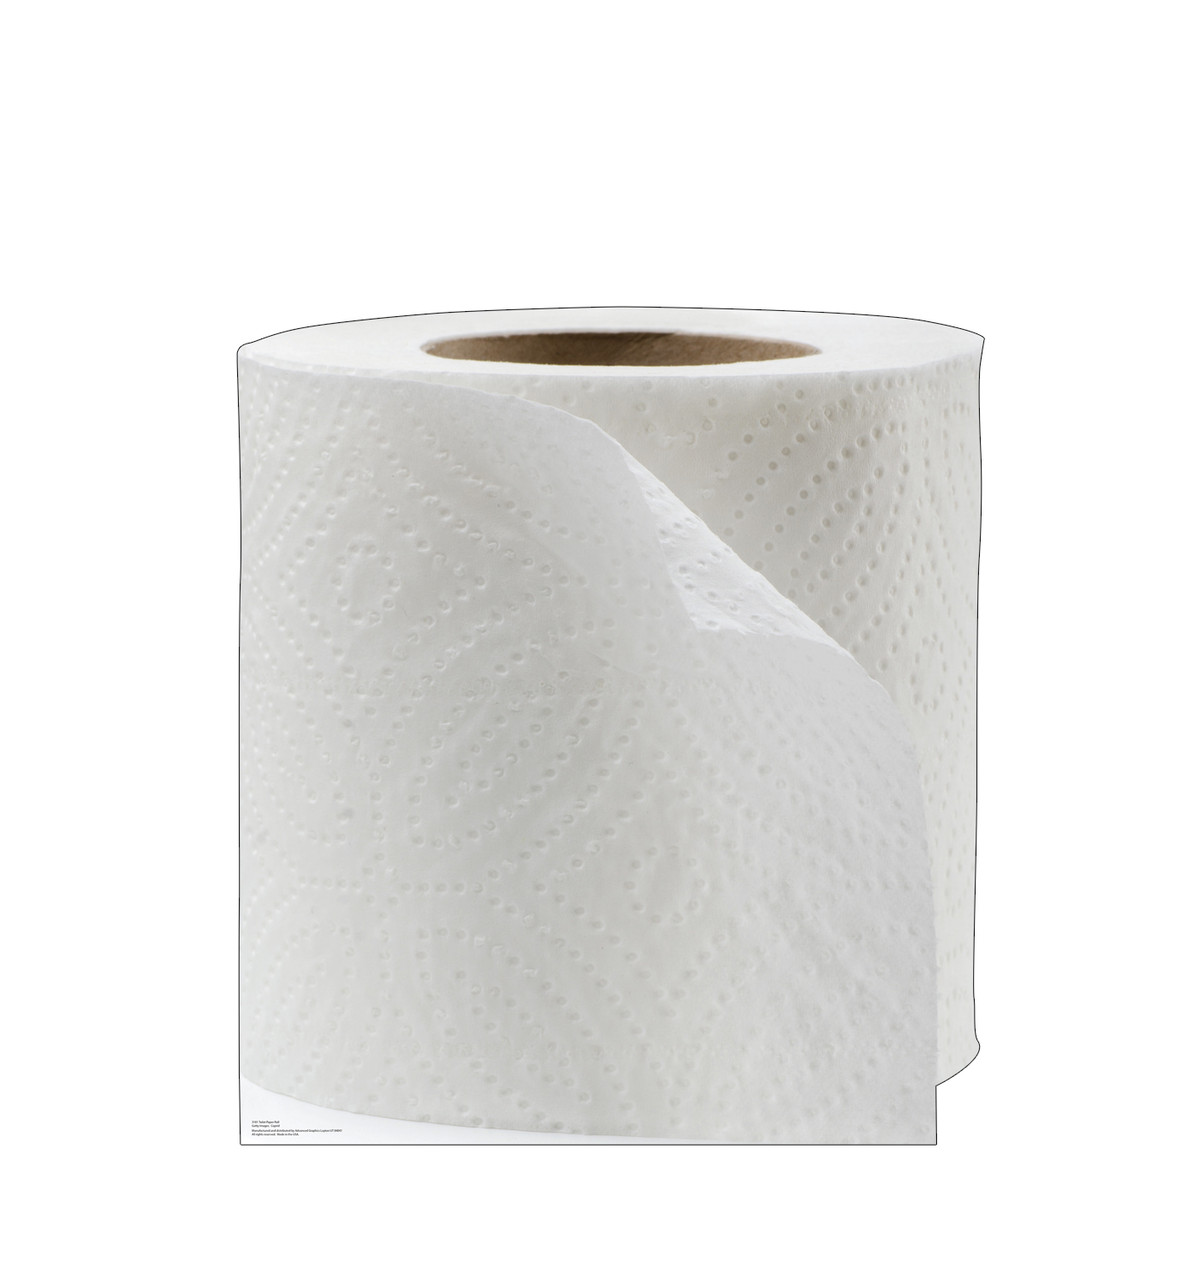 Life-size cardboard standee of Toilet Paper Roll.